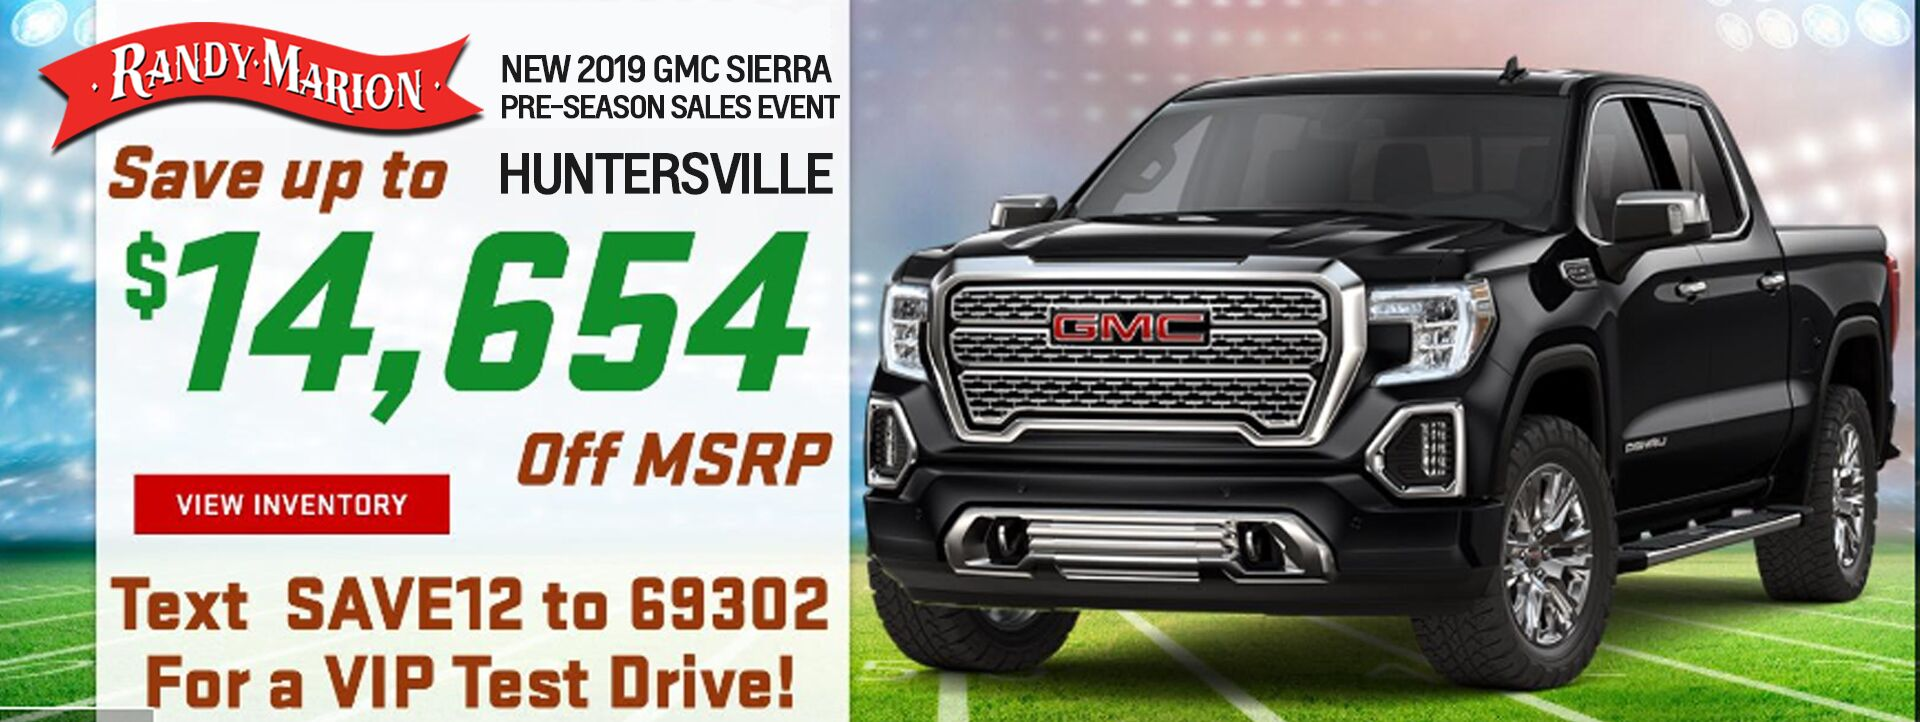 August GMC Sierra Offer